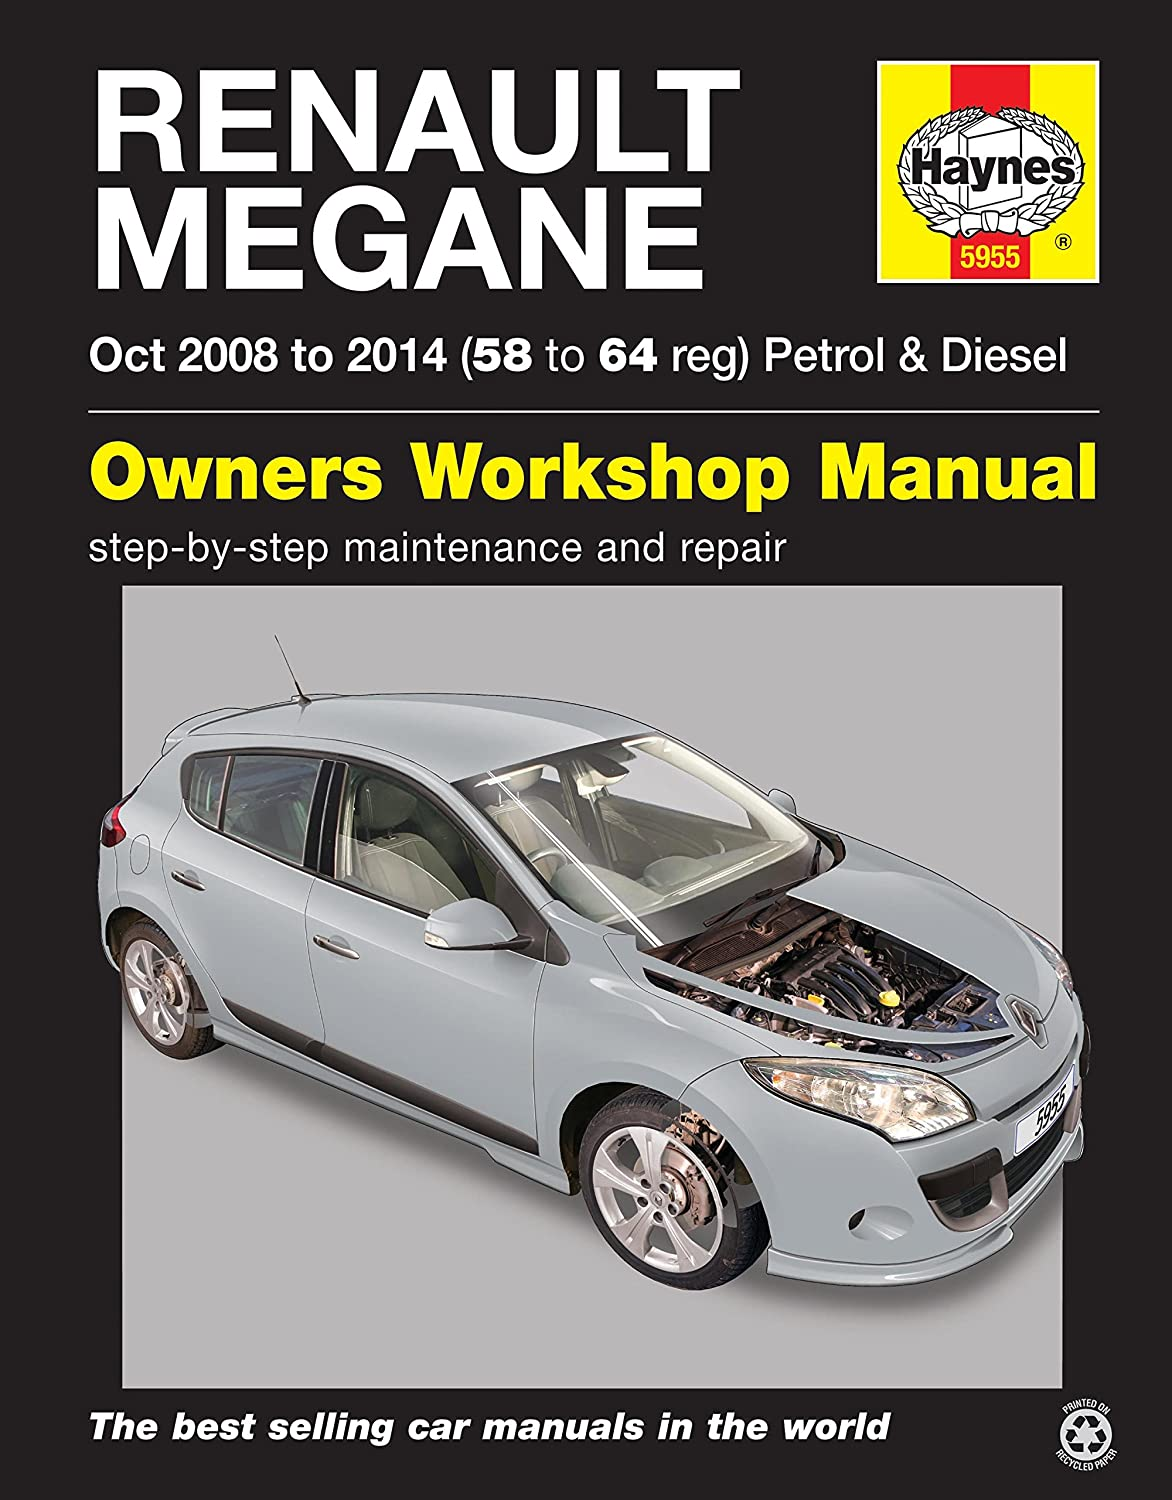 Renault Megane Repair Manual Haynes Manual Service Manual Workshop Manual  2008-2014: Amazon.